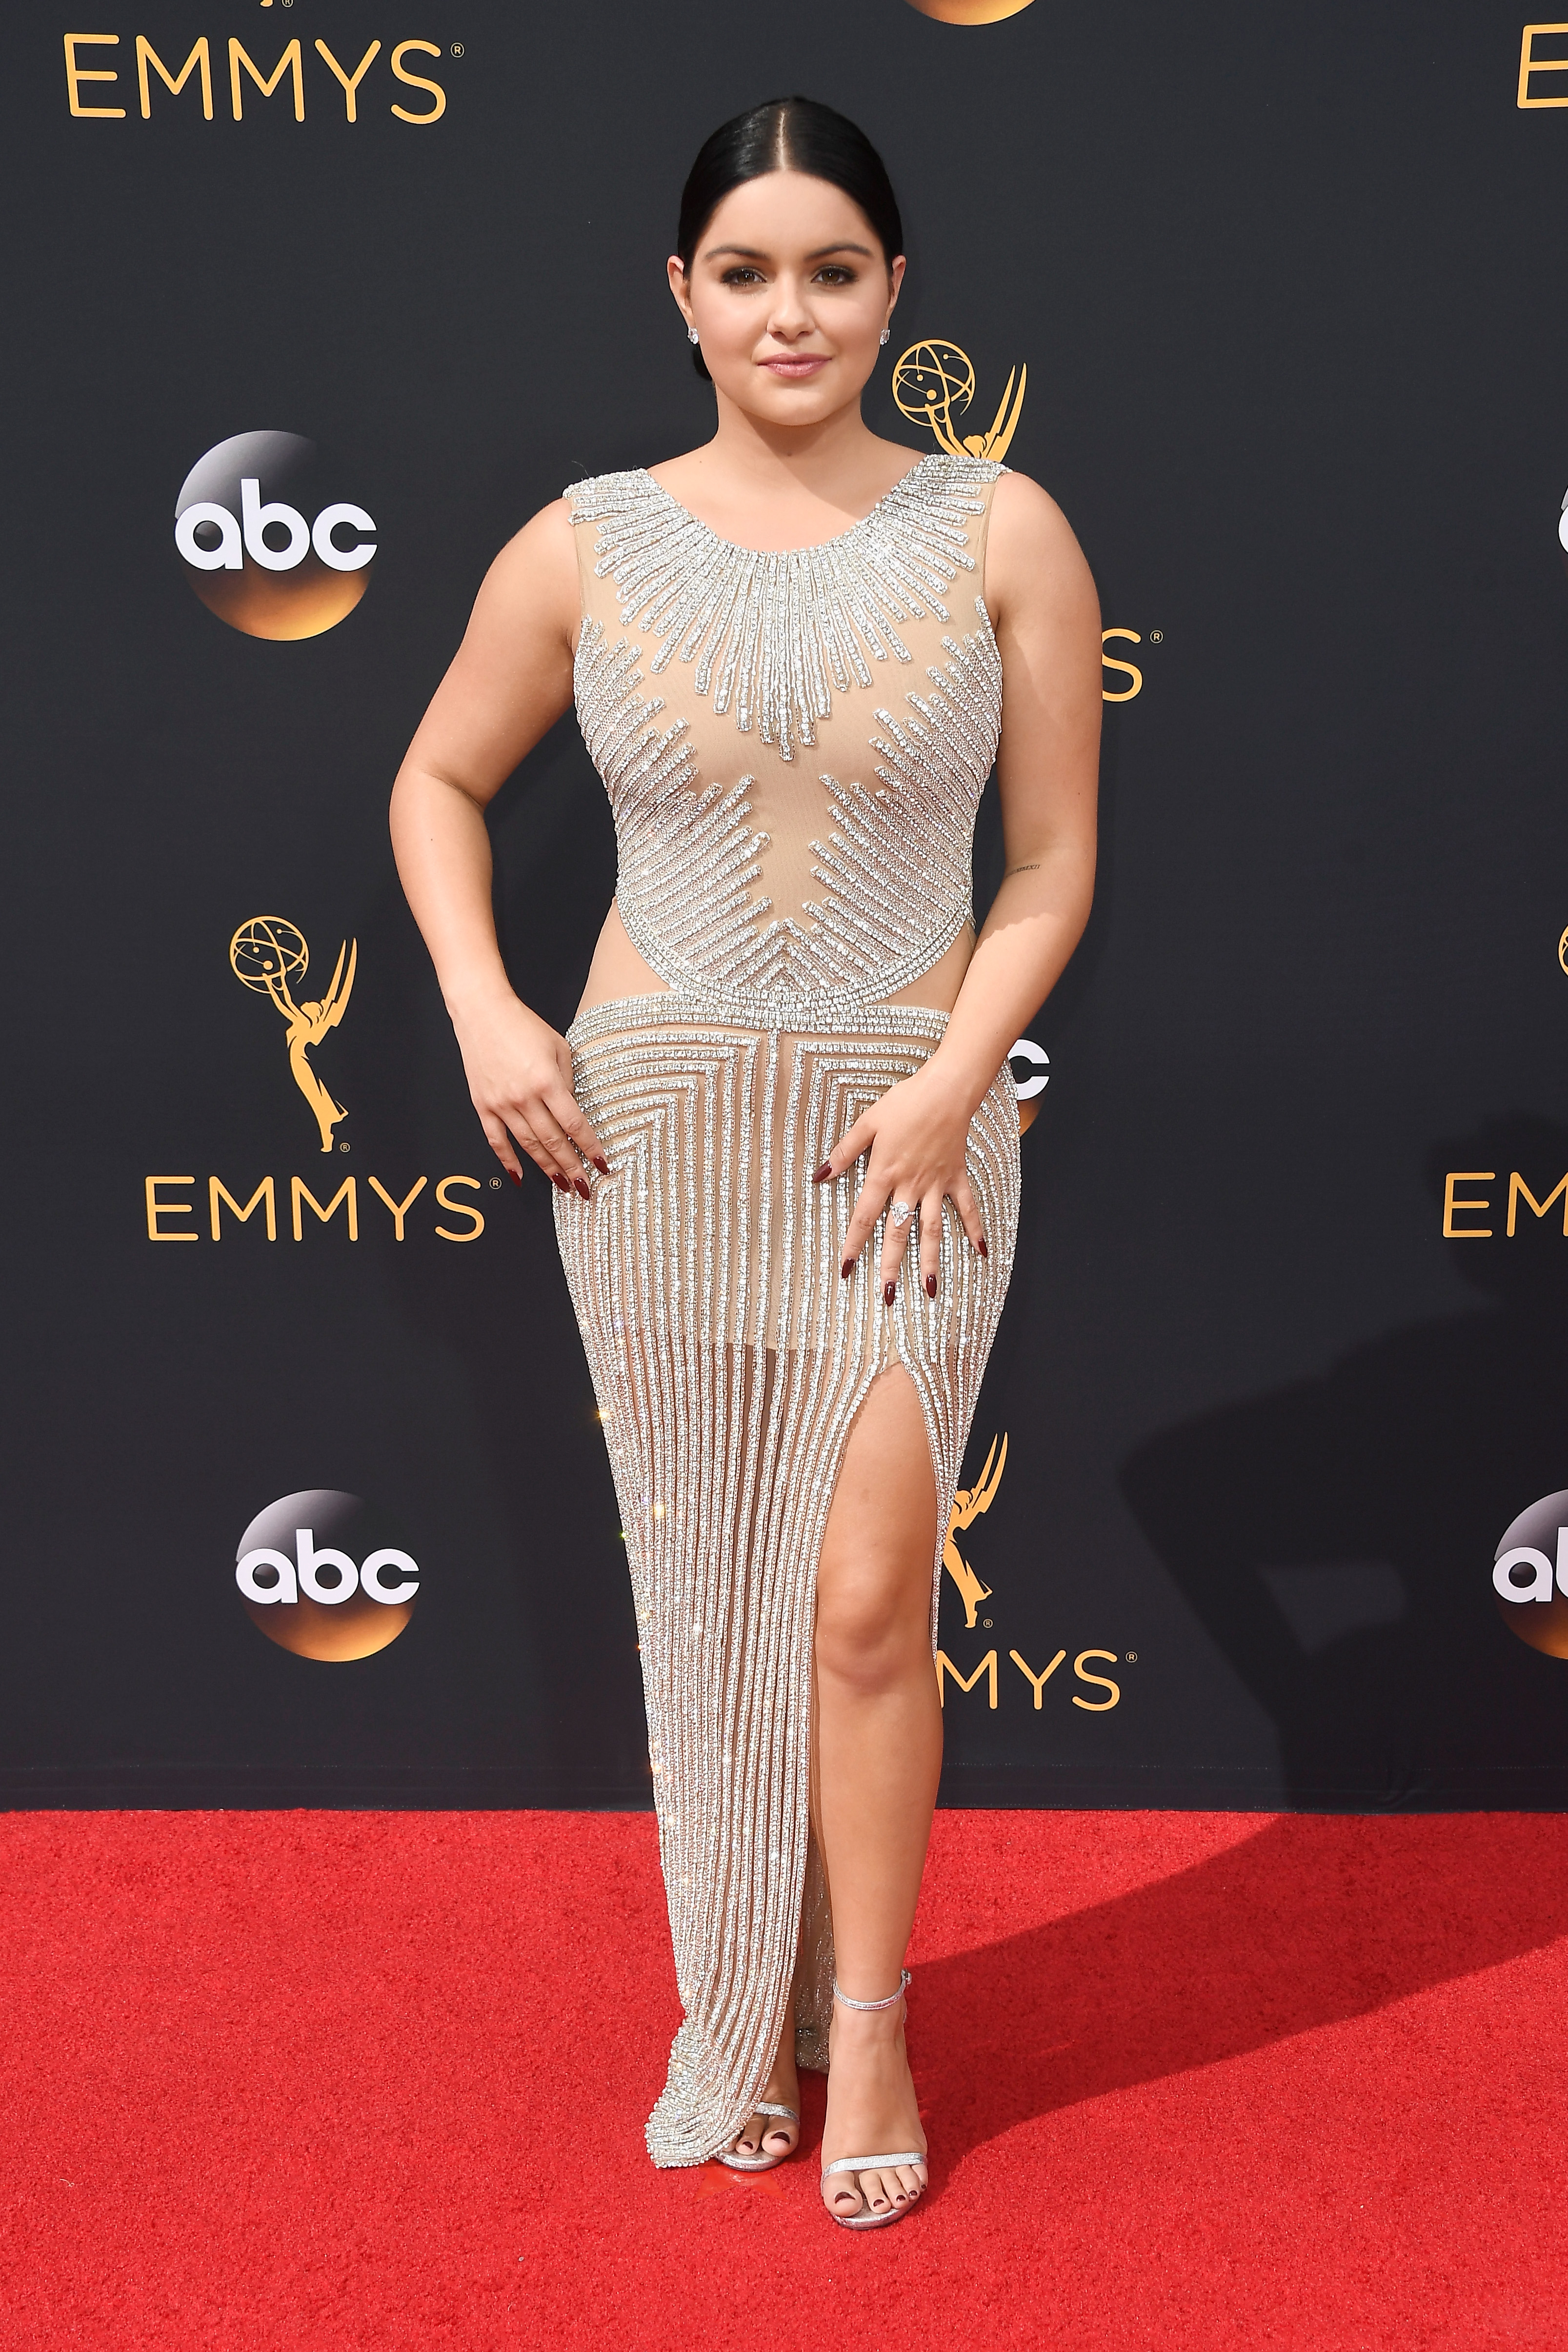 LOS ANGELES, CA - SEPTEMBER 18: Actress Ariel Winter attends the 68th Annual Primetime Emmy Awards at Microsoft Theater on September 18, 2016 in Los Angeles, California. (Photo by Frazer Harrison/Getty Images)